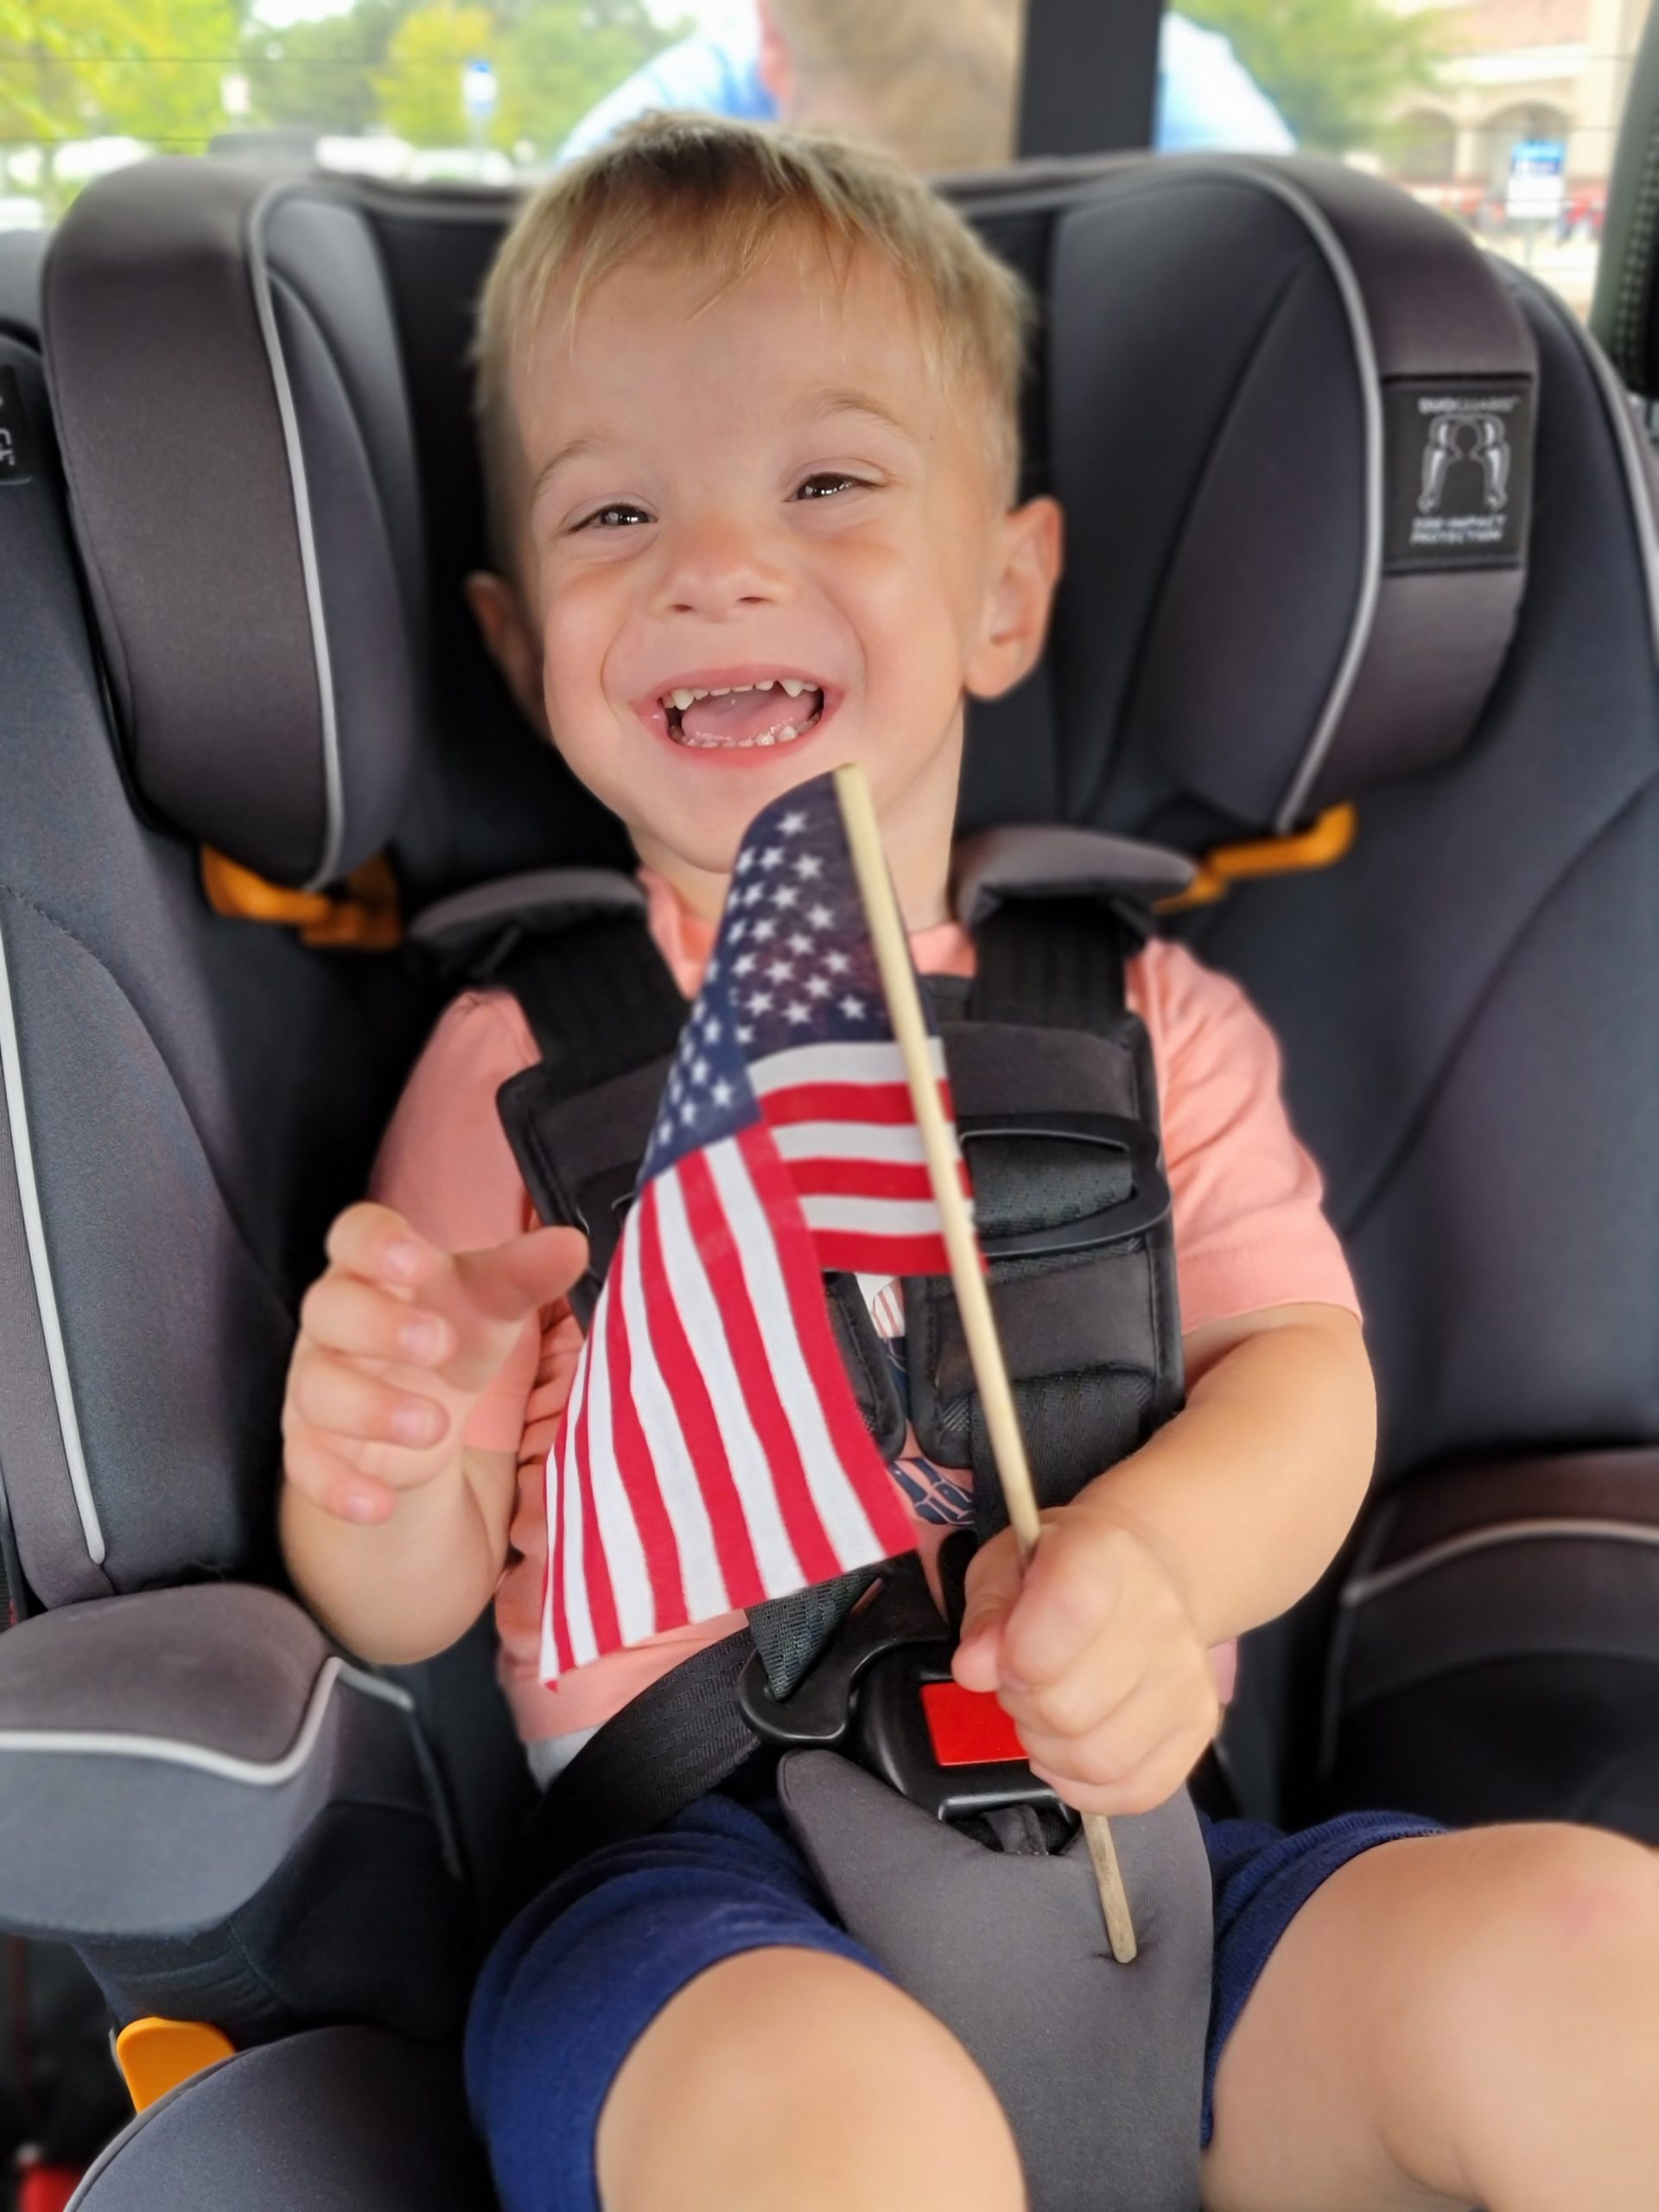 Blog Update 2: Fourth of July, Why I Took Time to Myself, Officially Official, and Future Plans!